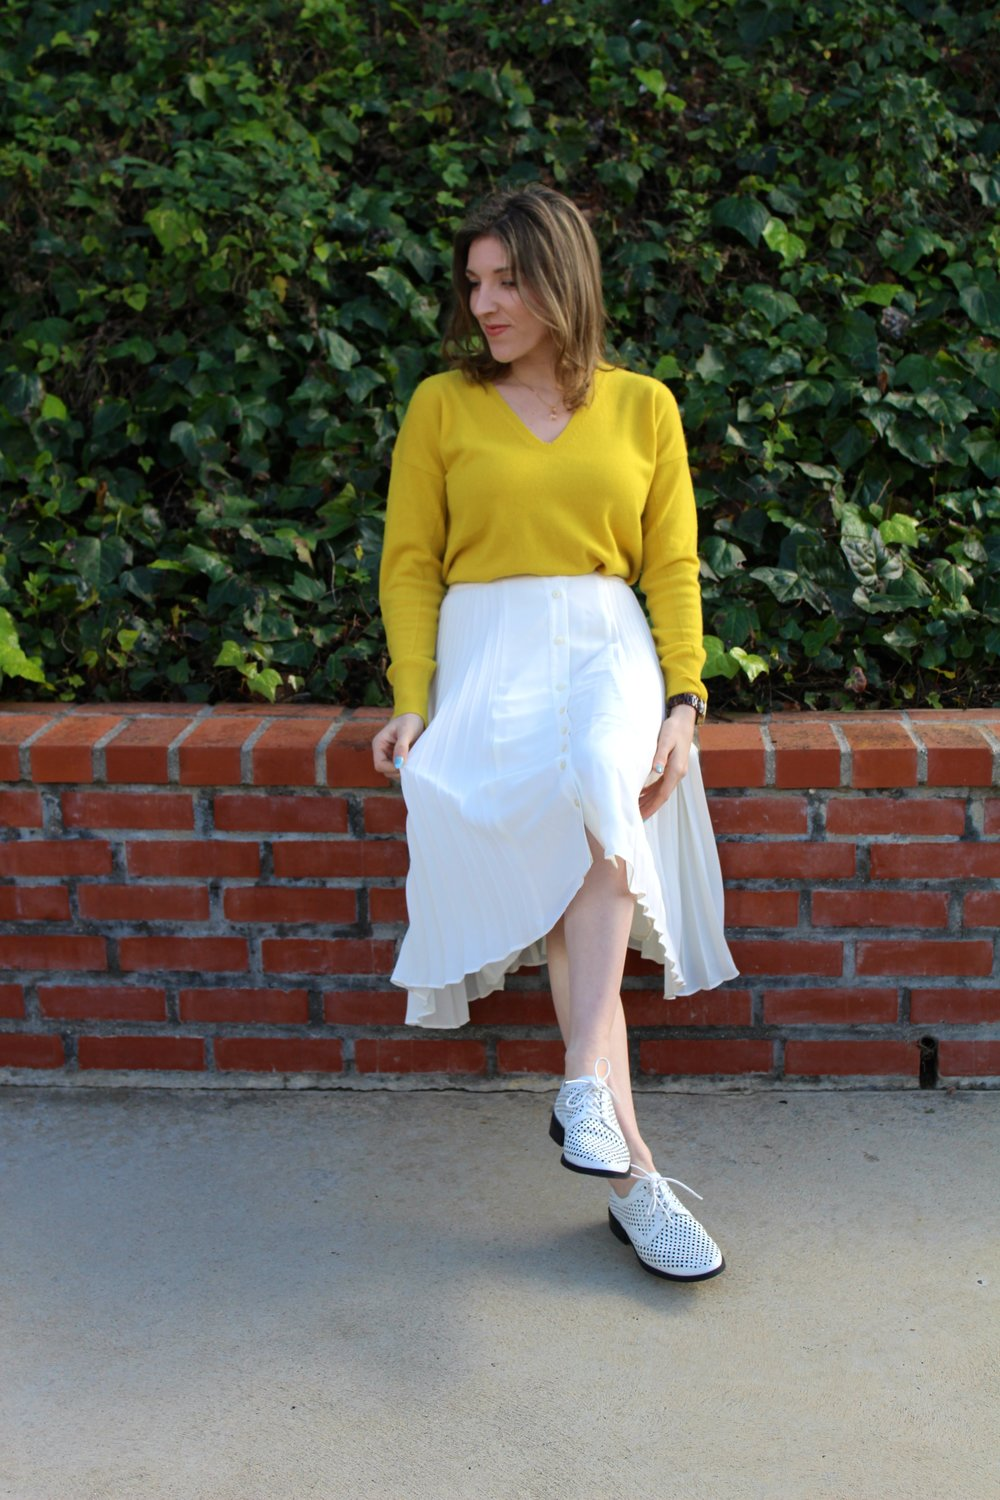 Top: Banana Republic,  similar here  // Skirt: Banana Republic,  similar here  // Shoes: Forever 21,  similar here     It sure has been raining a lot here in Los Angeles! As much as I love the rain and as much as we do need it, I am looking forward to my bright and sunny spring weather. This past week we had a clear somewhat warmish day, so of course I took full advantage. And although the weather didn't really permit for me to wear this, I had to anyways. I am craving spring and sunshine.     How fun is this bright yellow cashmere sweater?! It is so soft and I am in love with the color. Such a pop of fun! And who doesn't like to don a soft cashmere sweater? I have been living in them all winter long! I have worn this beautiful white midi skirt in a previous post, but by pairing it with a tucked in sweater, it changes the look all together! I love having pieces in my closet that are interchangeable and with one tweak can be totally transformed! I threw in a fun white oxford shoe to tie the whole look together and scream SPRING! I love this white and yellow color combo for spring as well! Hopefully the rain will bring a beautiful spring full of beautiful flowers and brightness! Looking forward to my new spring wardrobe as well! Stay tuned for new posts!    As always, thanks for stopping by! Have a great Wednesday friends!  ~ Nicole